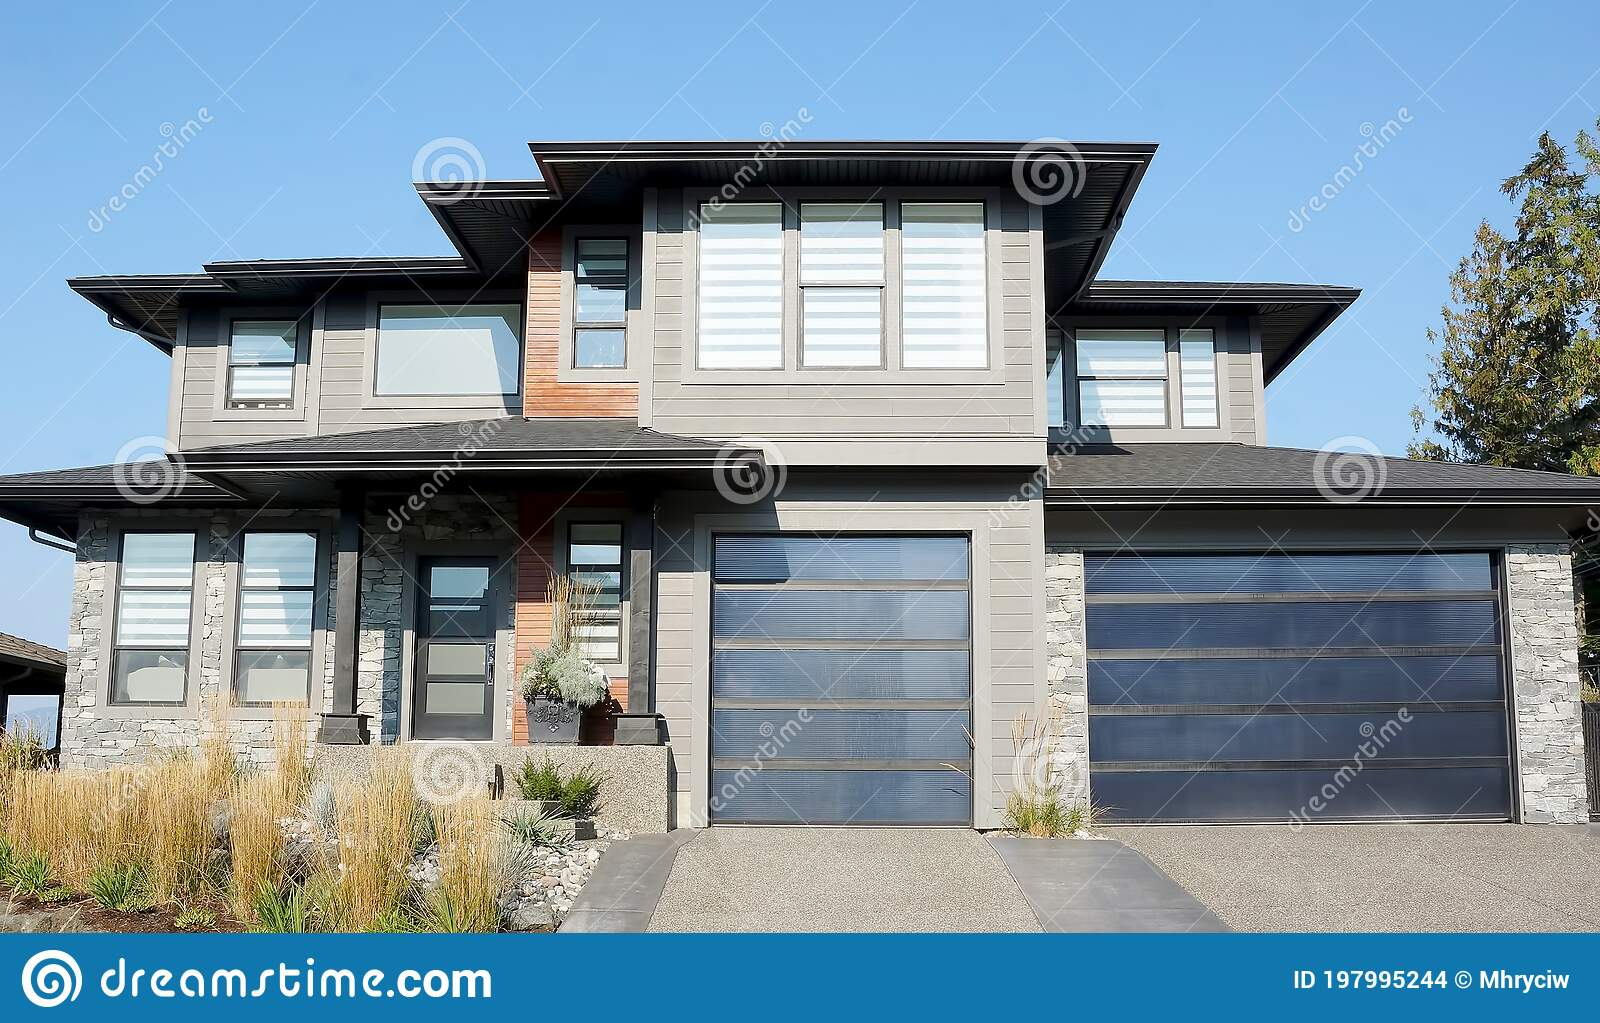 New Gray Black Home House Residence Exterior Double Garage Stock Photo Image Of Exterior Beige 197995244